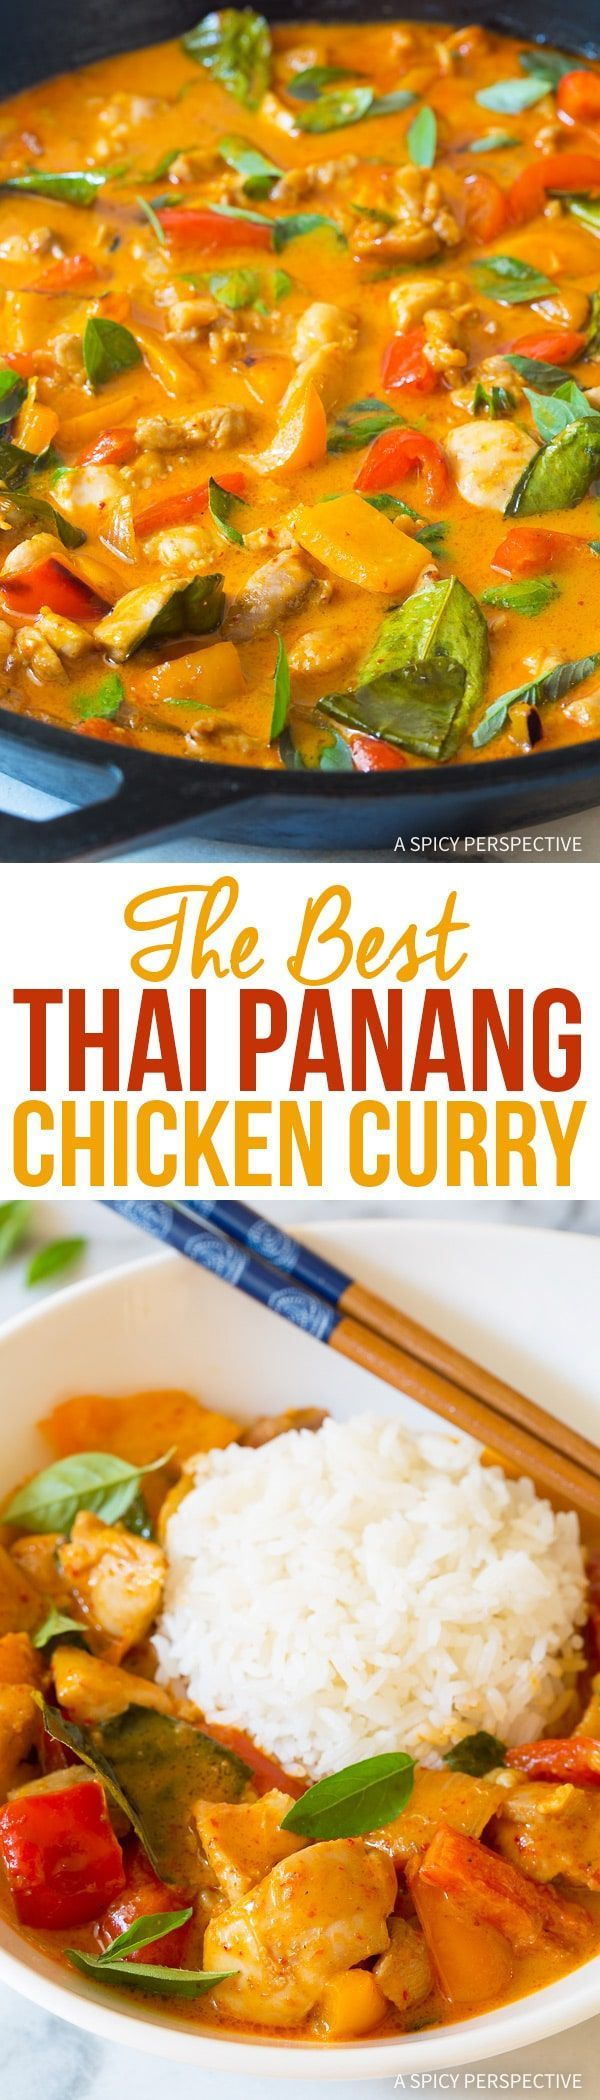 The Best Thai Panang Chicken Curry Recipe - The most amazing red chicken curry we've ever made! This light and healthy dish is better than any takeout option out there, and it's easy to make. via @spicyperspectiv